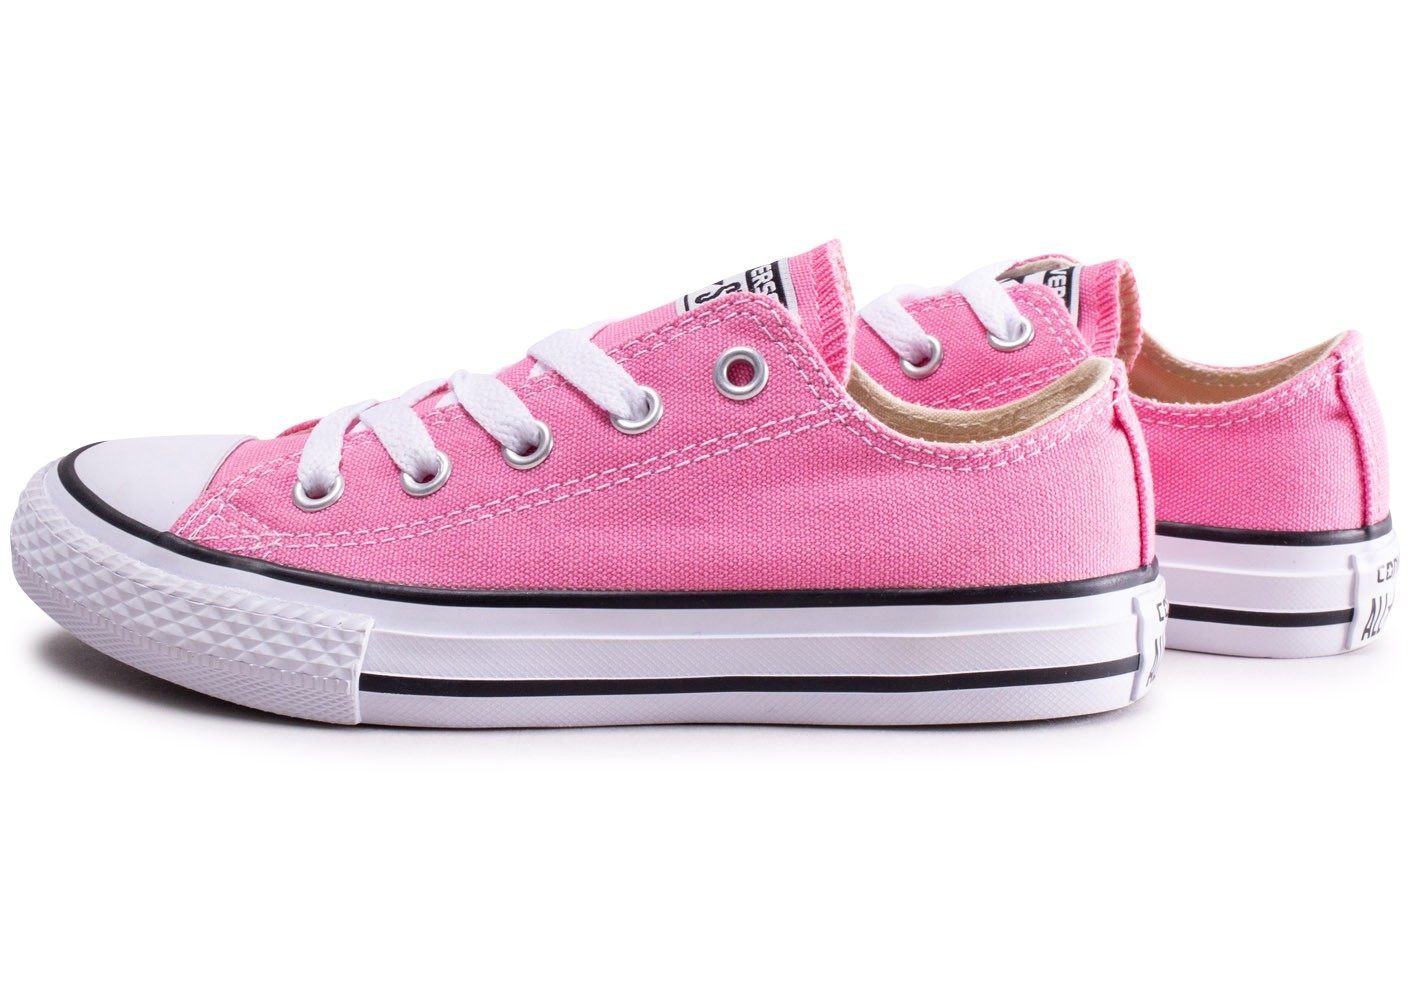 Converse Chuck Taylor All Star low rose - Chaussures Enfant ...